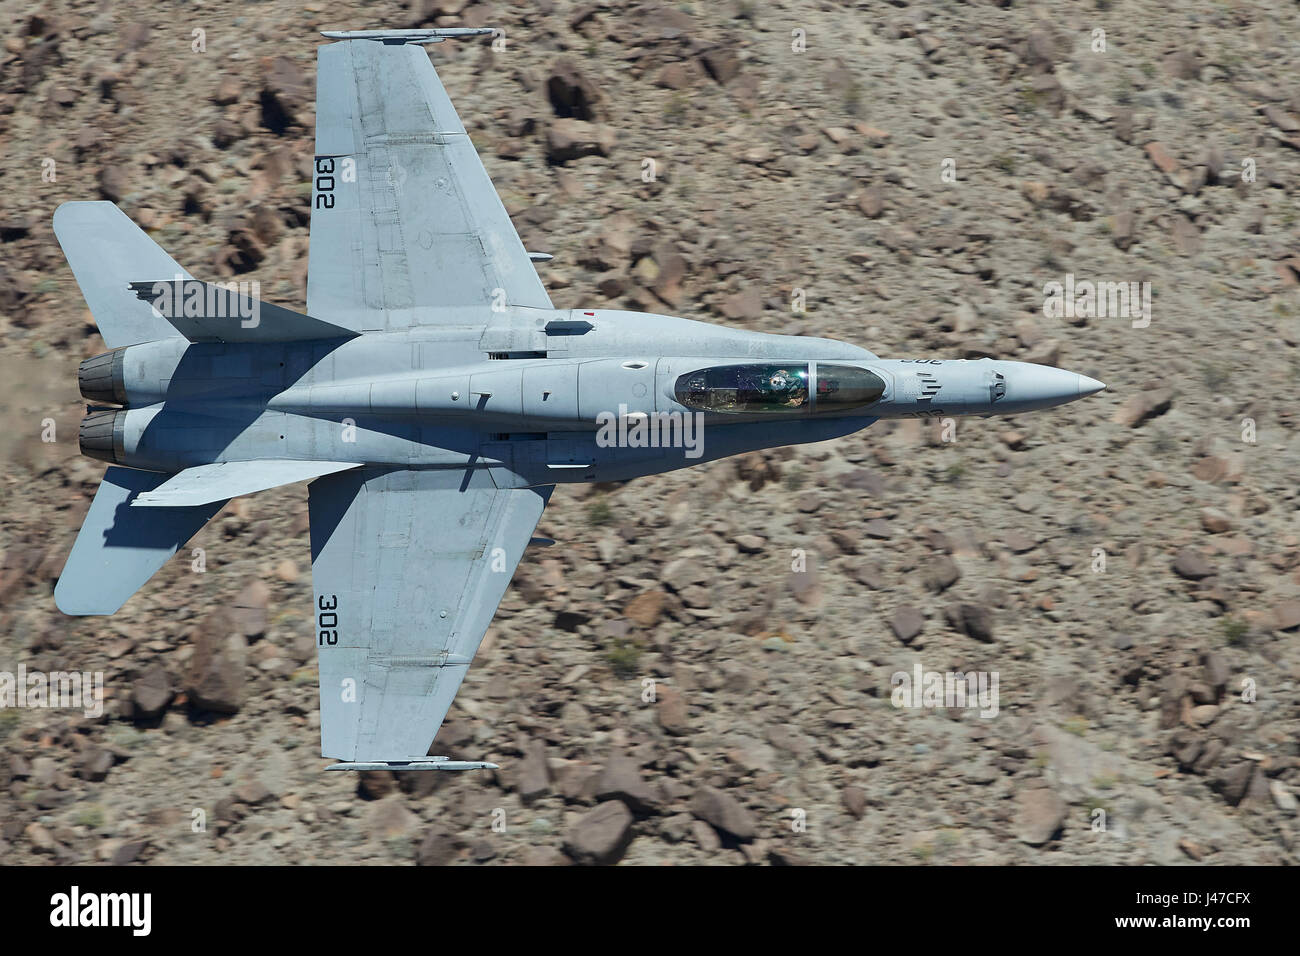 United States Navy F/A-18C, Hornet, Flying At High Speed And Low Level, Through A Desert Canyon. - Stock Image